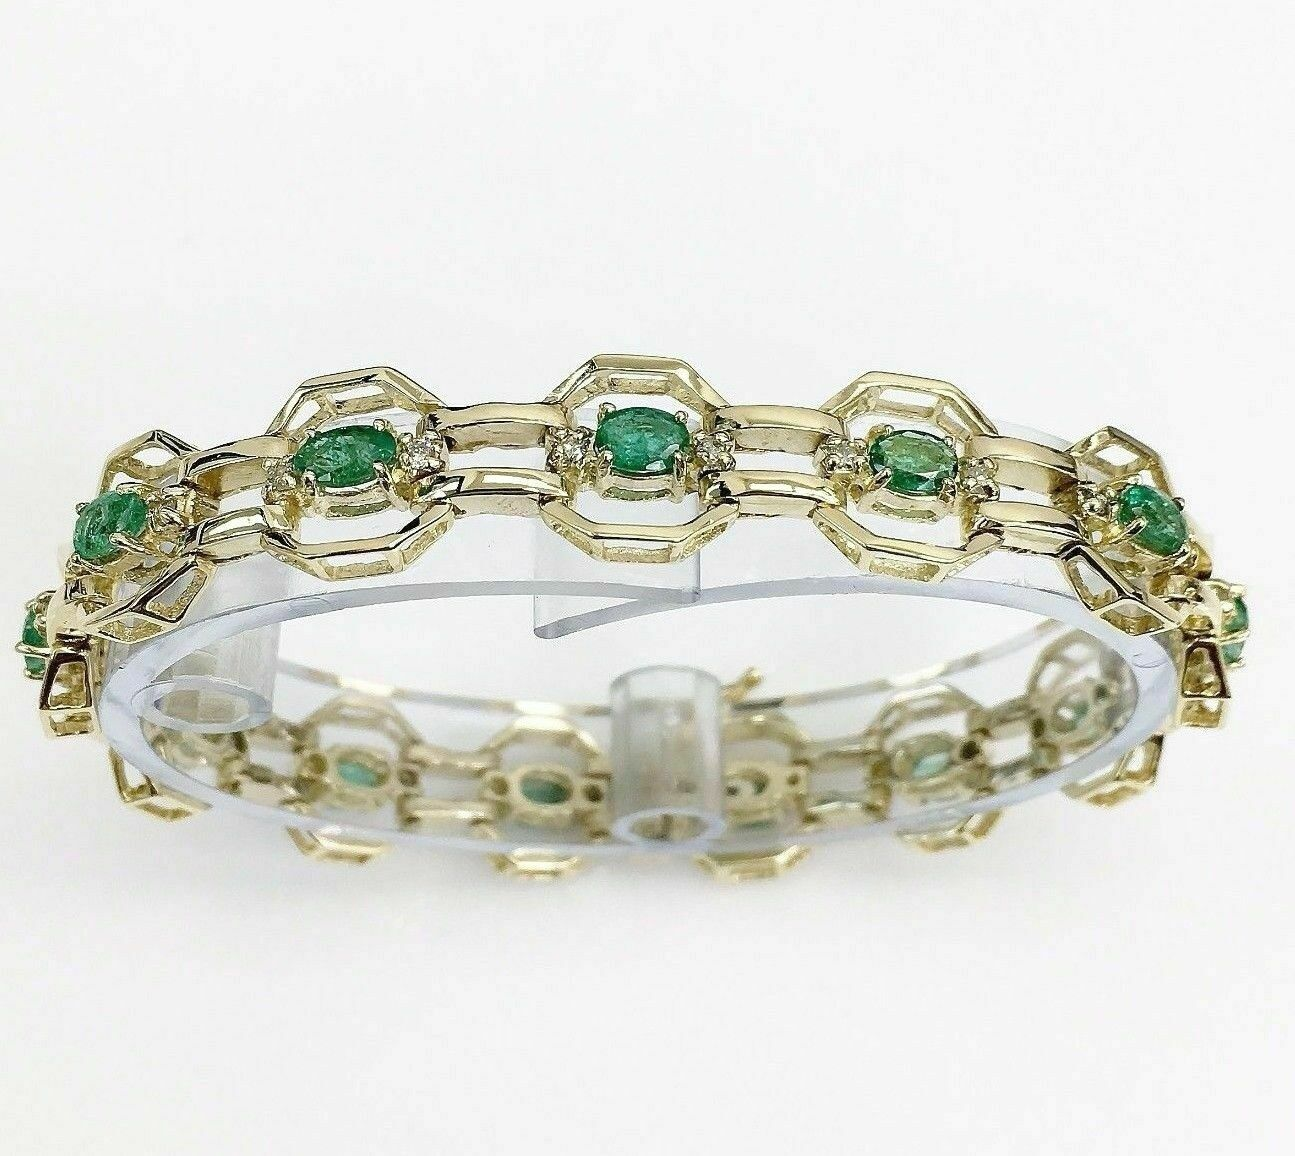 3.78 Carats t.w. Emerald and Diamond Tennis Bracelet 14KWhite Gold 3 Cts Emerald